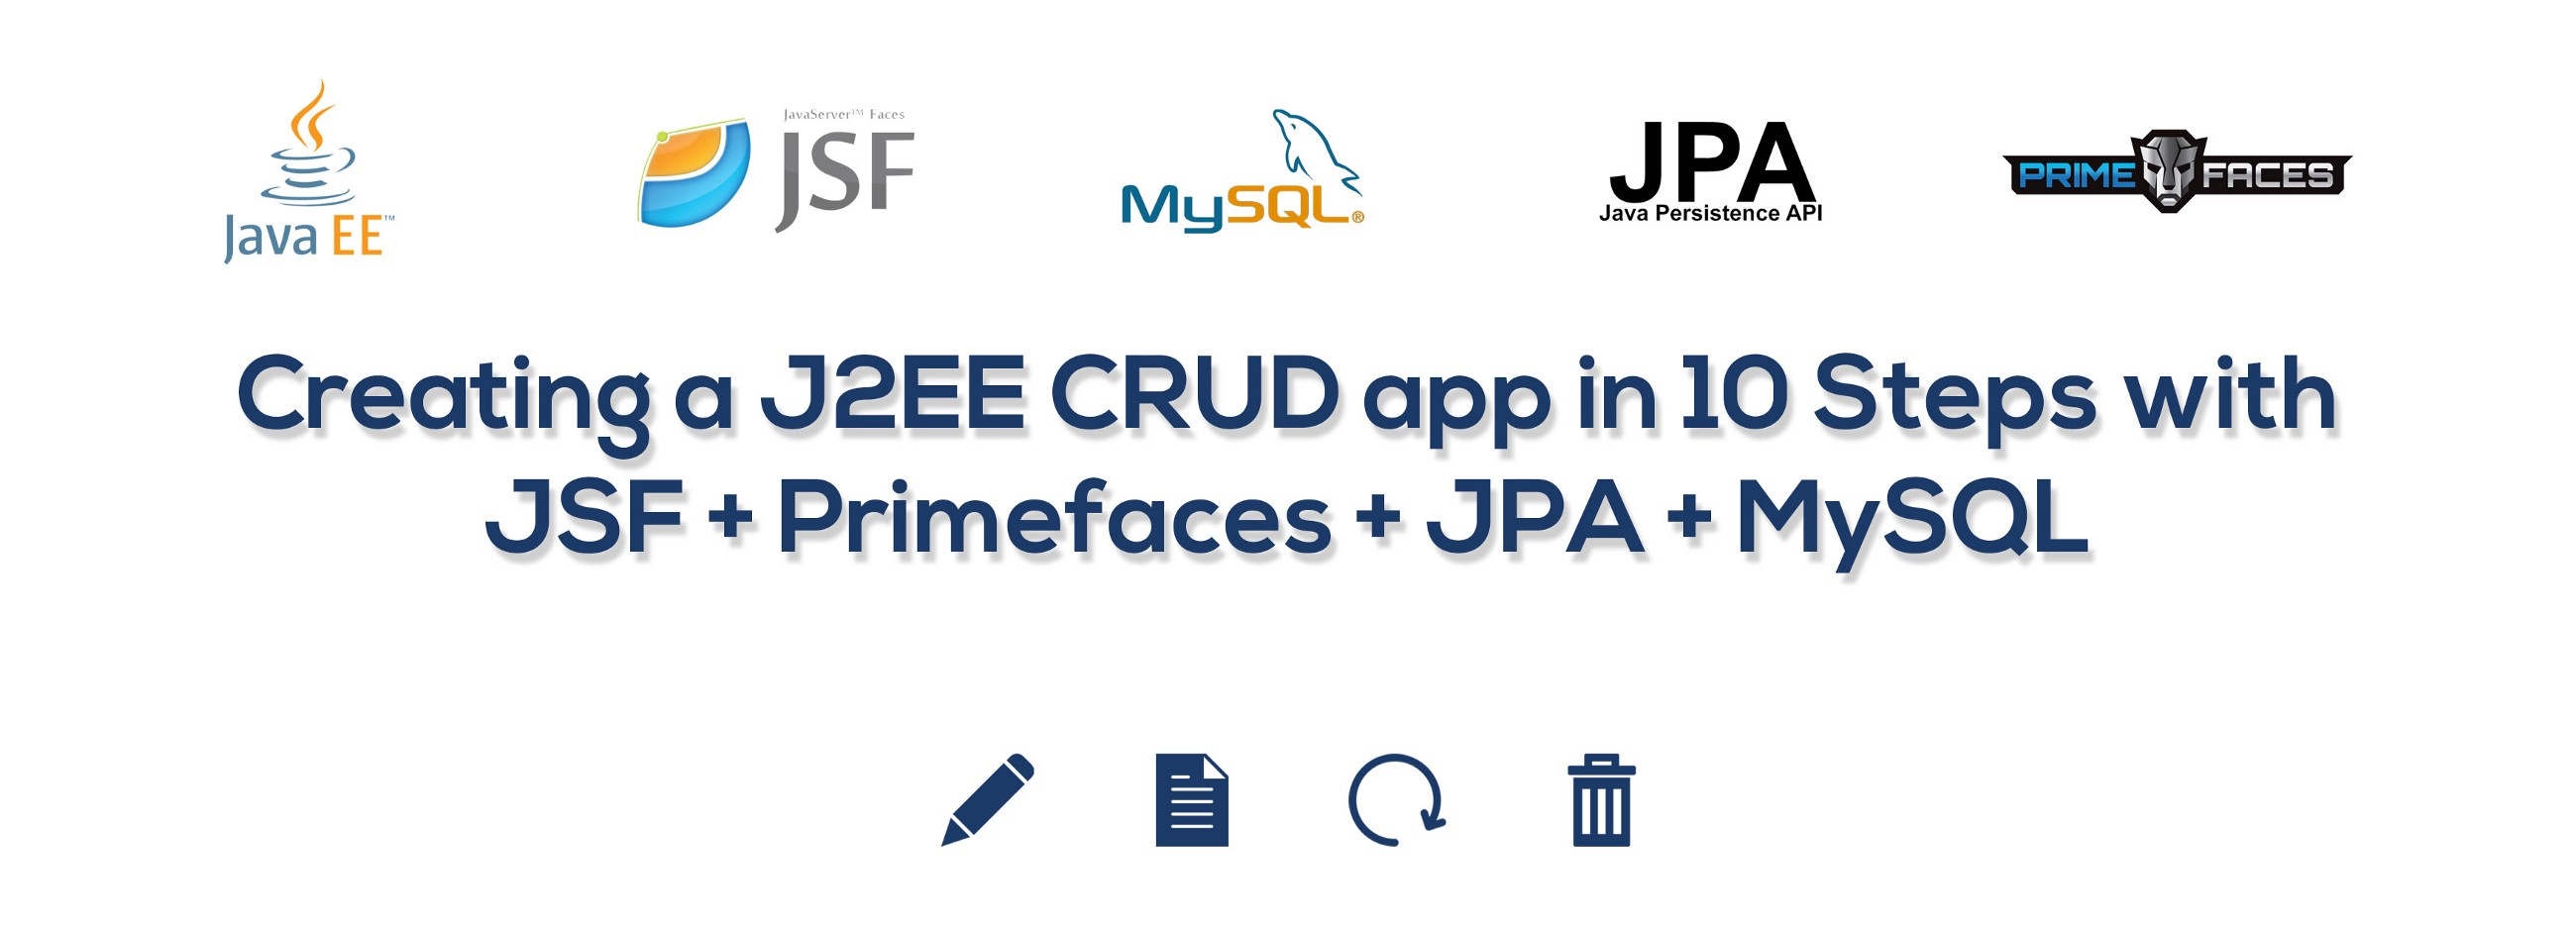 Creating a J2EE CRUD app in 10 Steps with JSF + Primefaces +